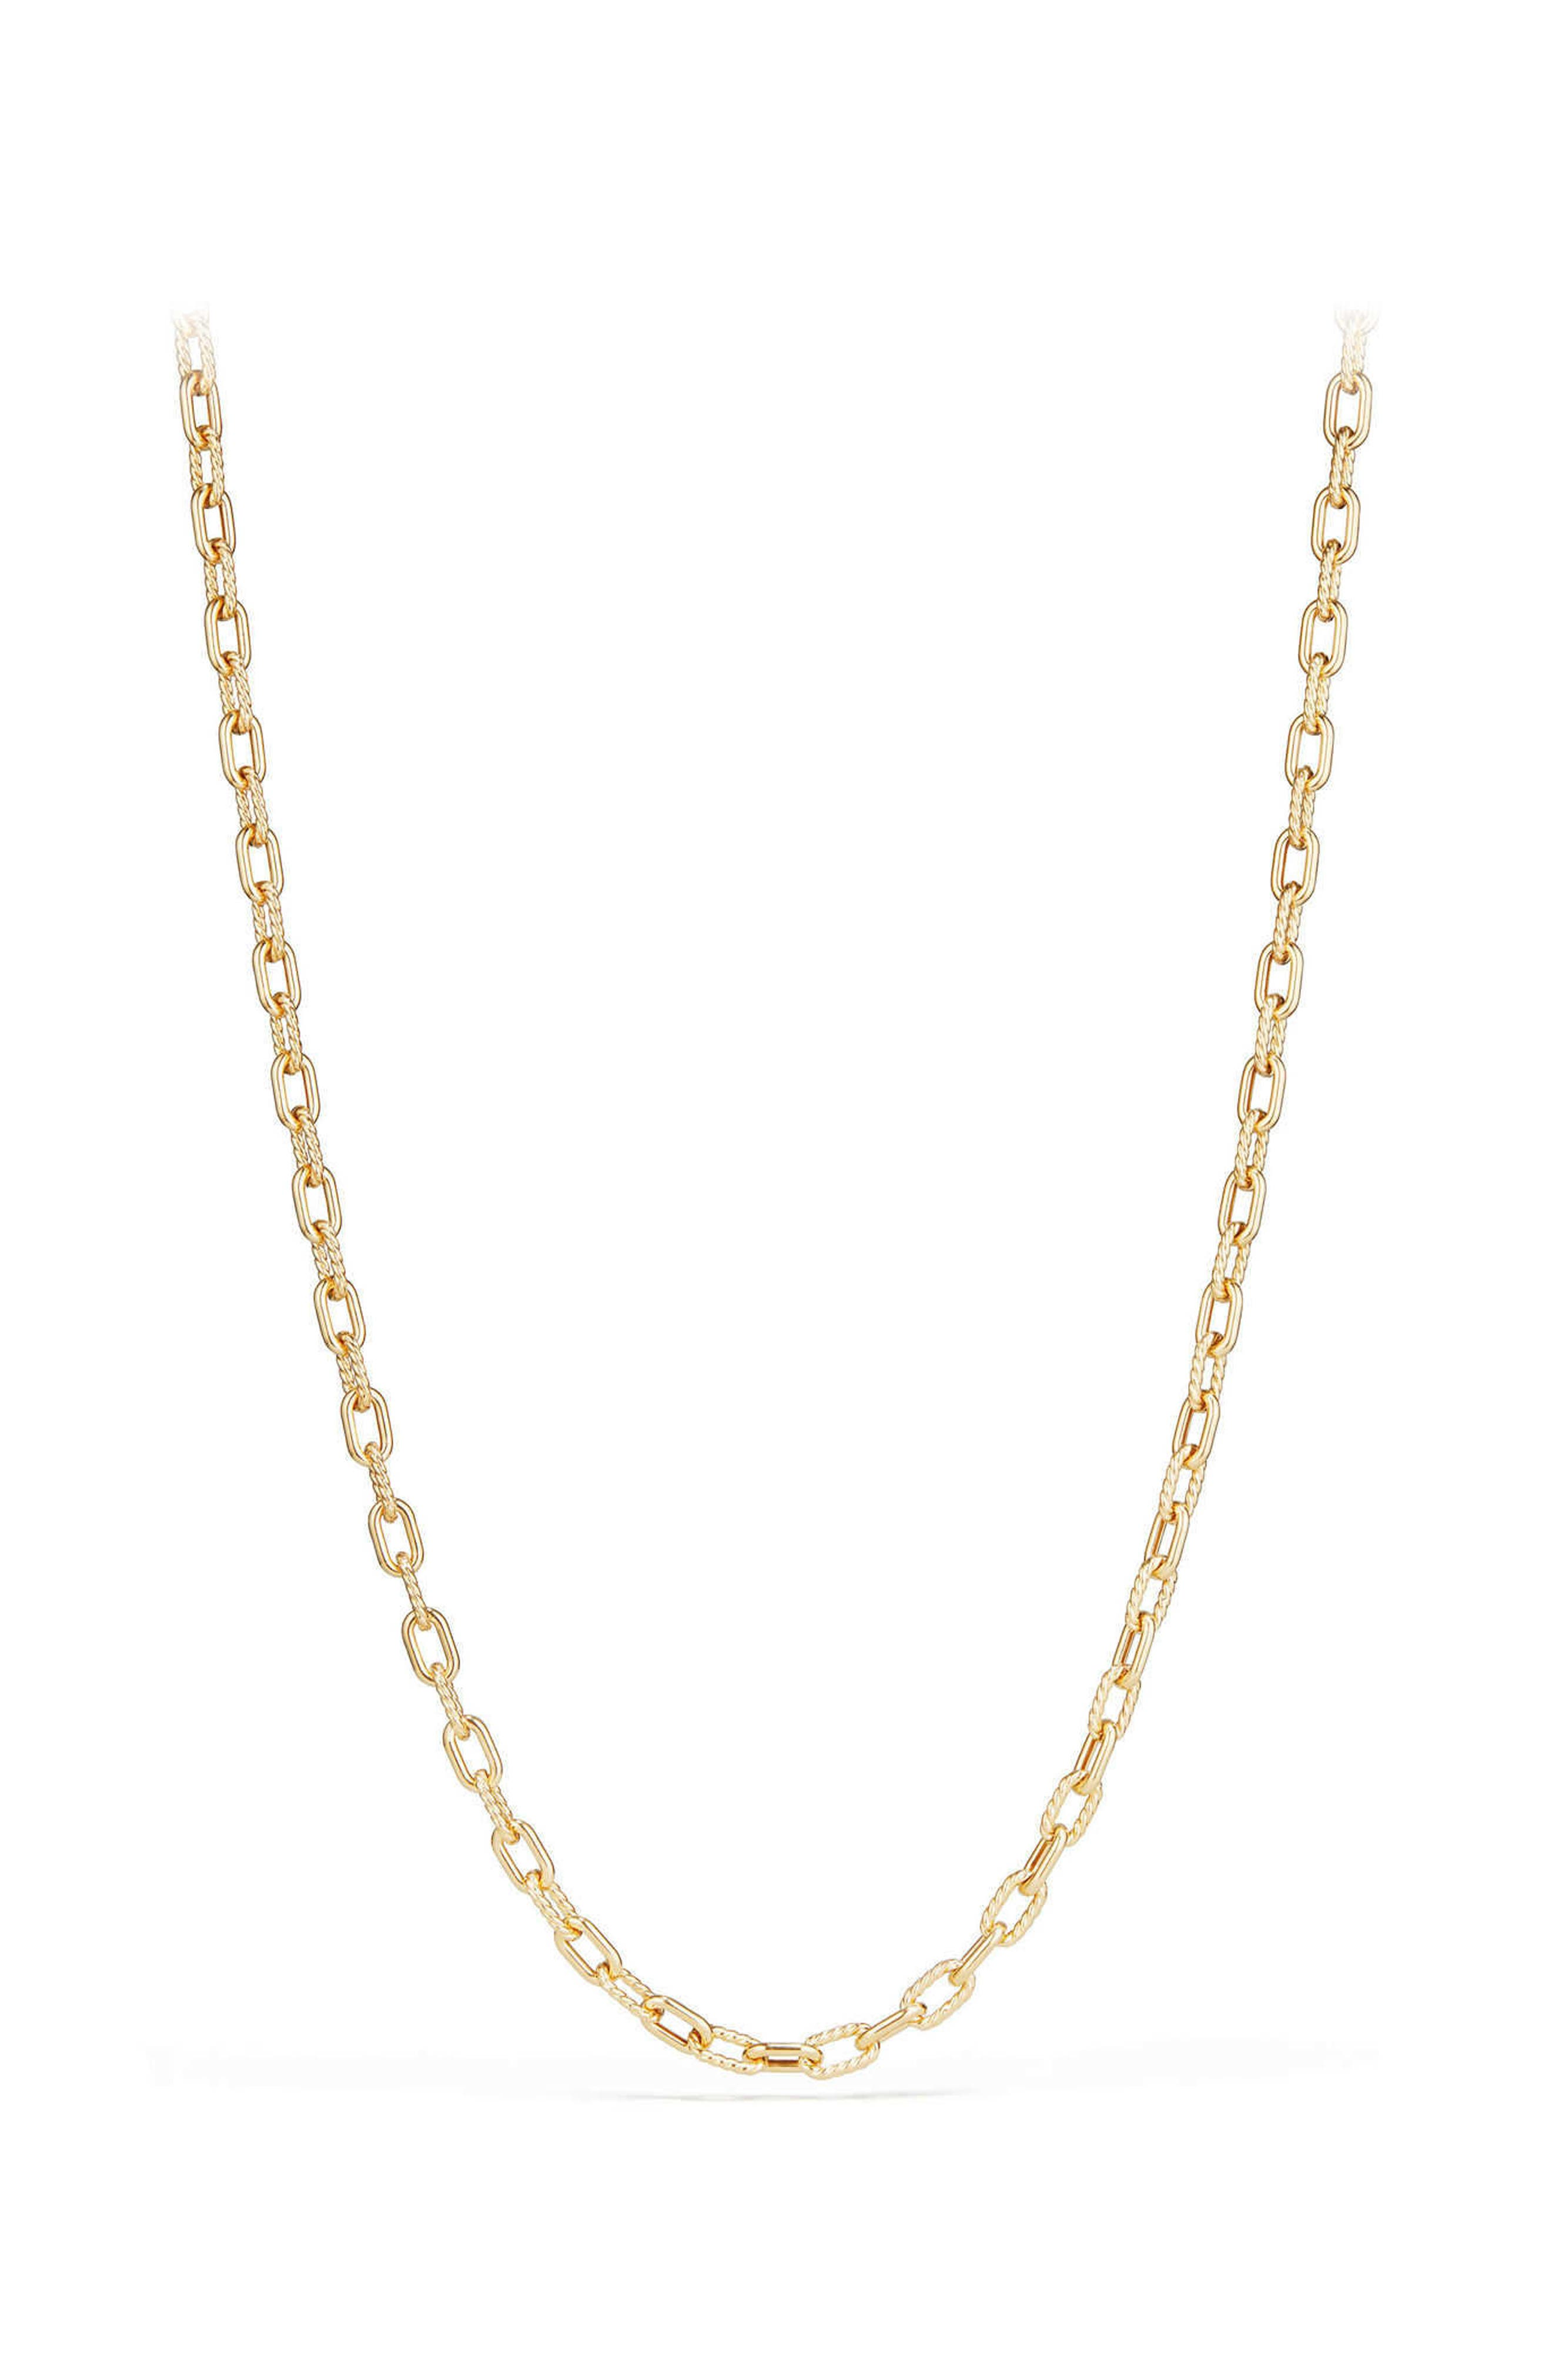 DY Madison Bold Chain Necklace in 18K Gold,                         Main,                         color, Gold